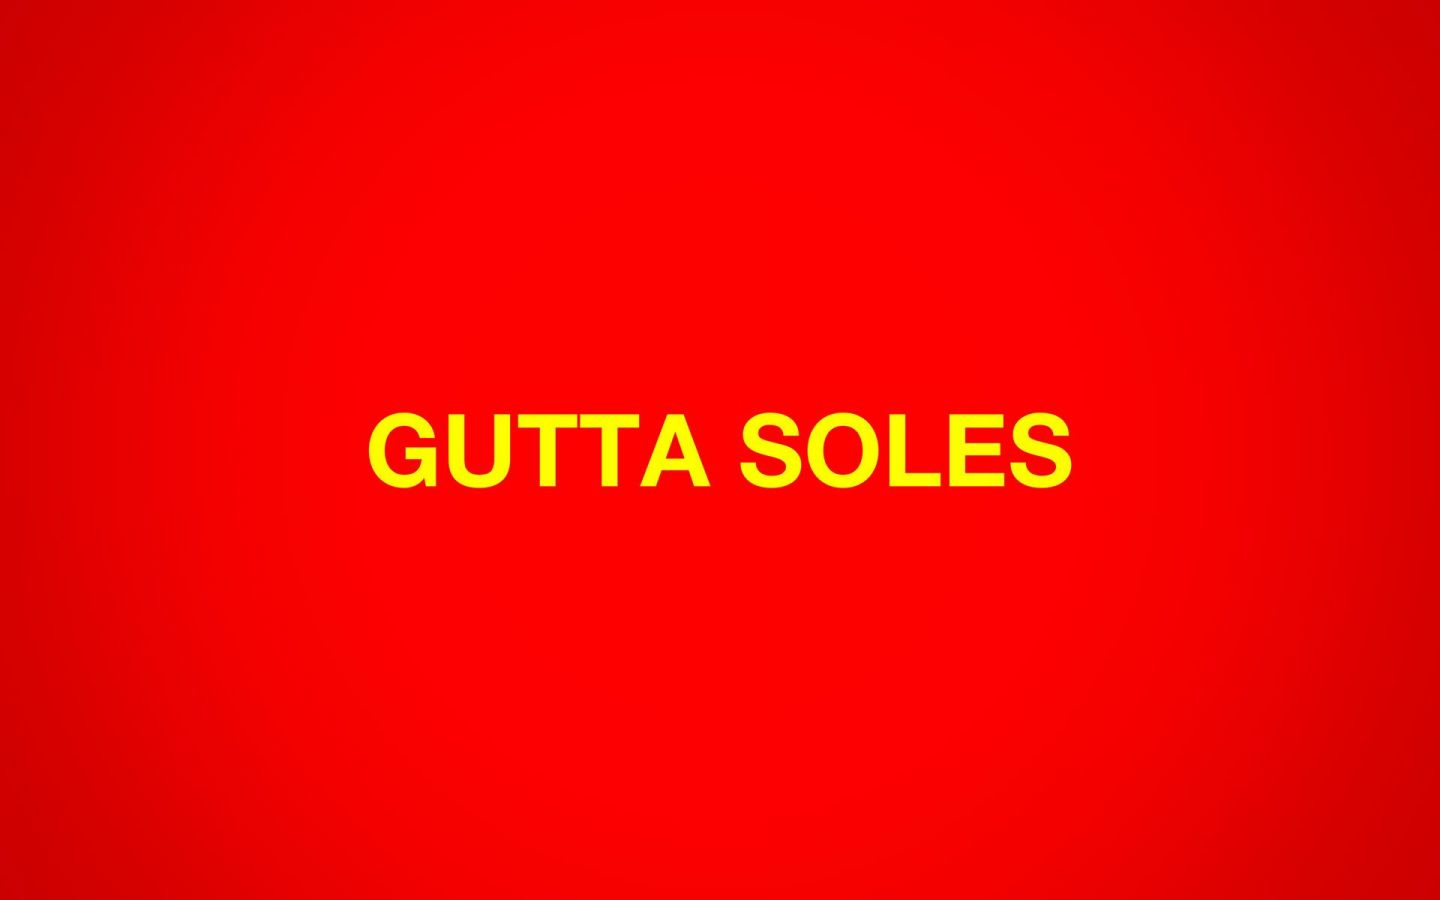 Gutta Soles Branding Project by Crevisio